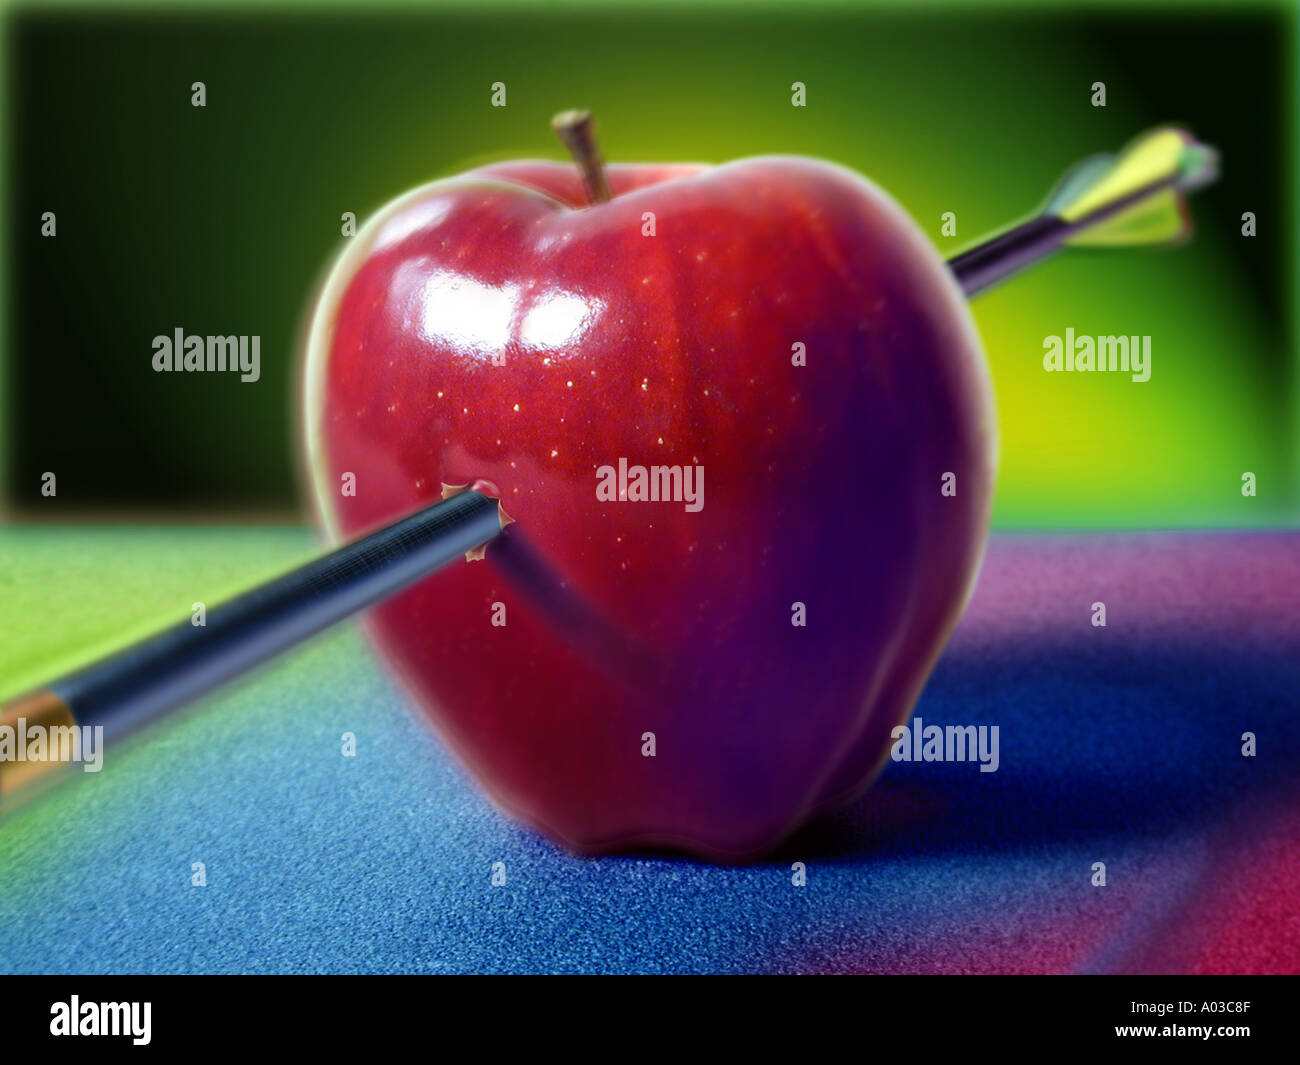 red apple hit by an arrow - Stock Image